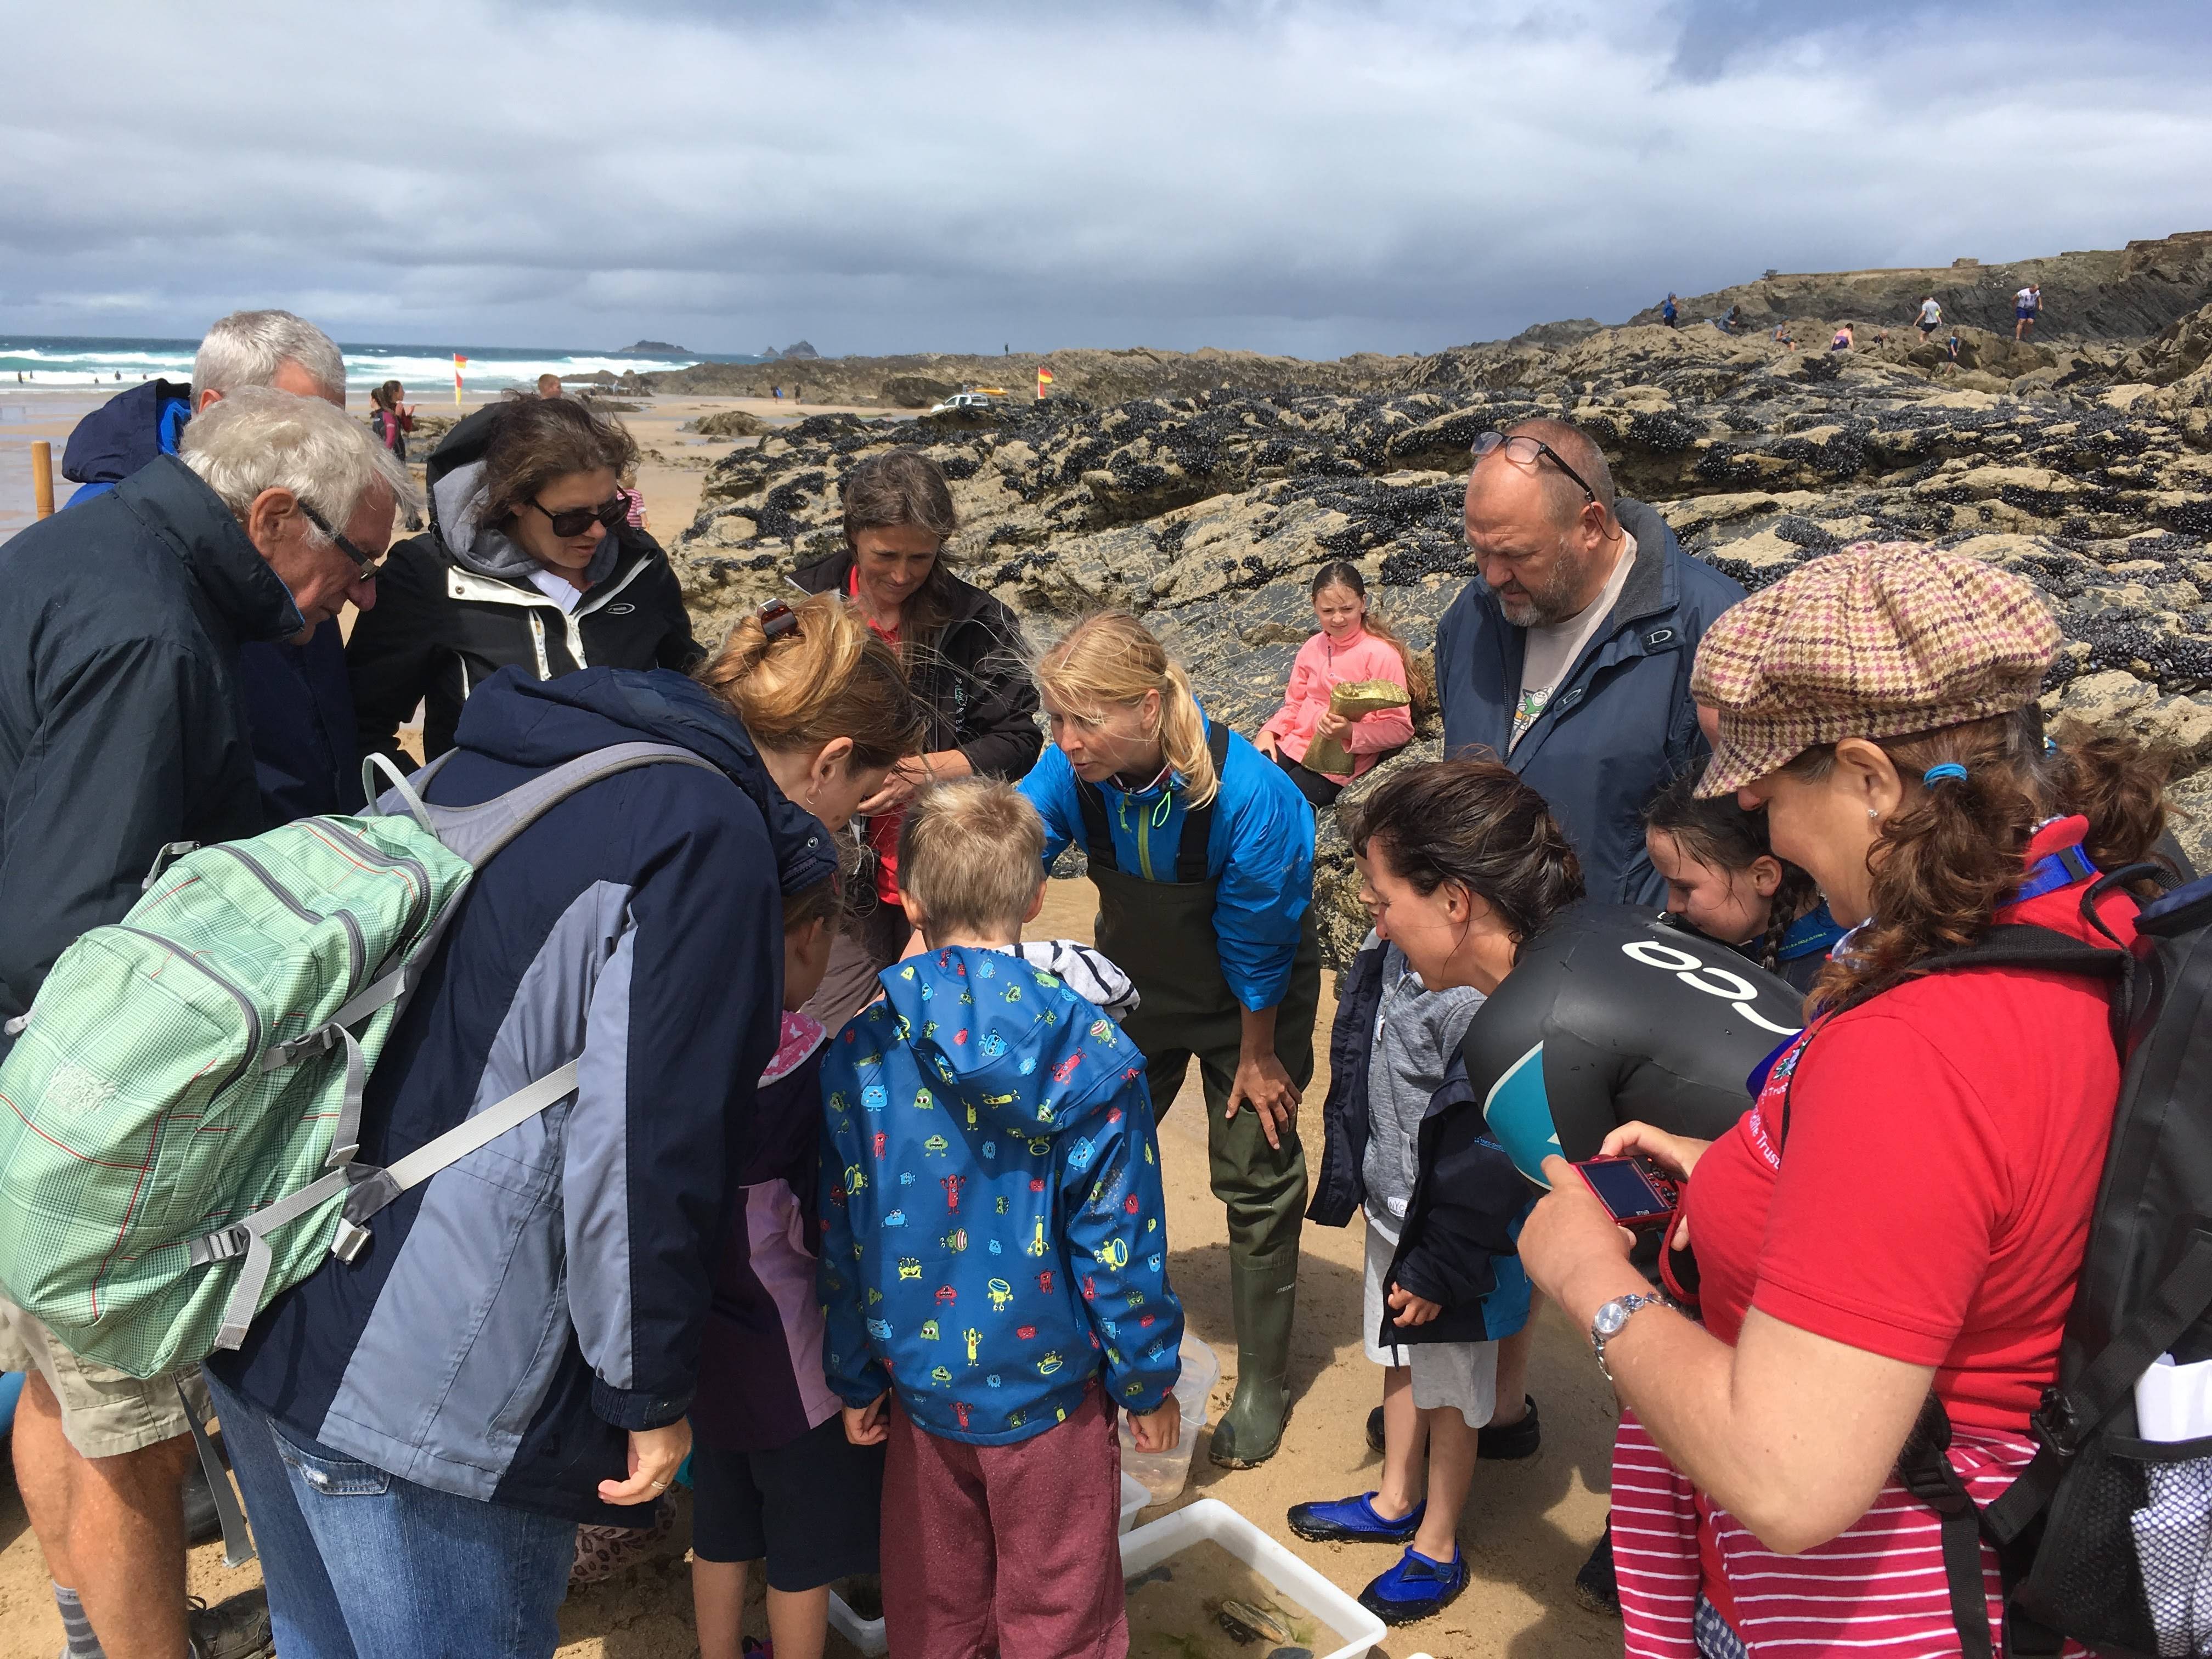 2017 was my first year of leading events for the Cornwall Wildlife Trust's junior branch. I used to love the events as a kid and introducing a new generation and their families to jellyfish, starfish and other rockpool creatures is so much fun! I can't wait for my 2018 Wildlife Watch events and the Looe Marine Conservation Group rockpool rambles where I also volunteer.